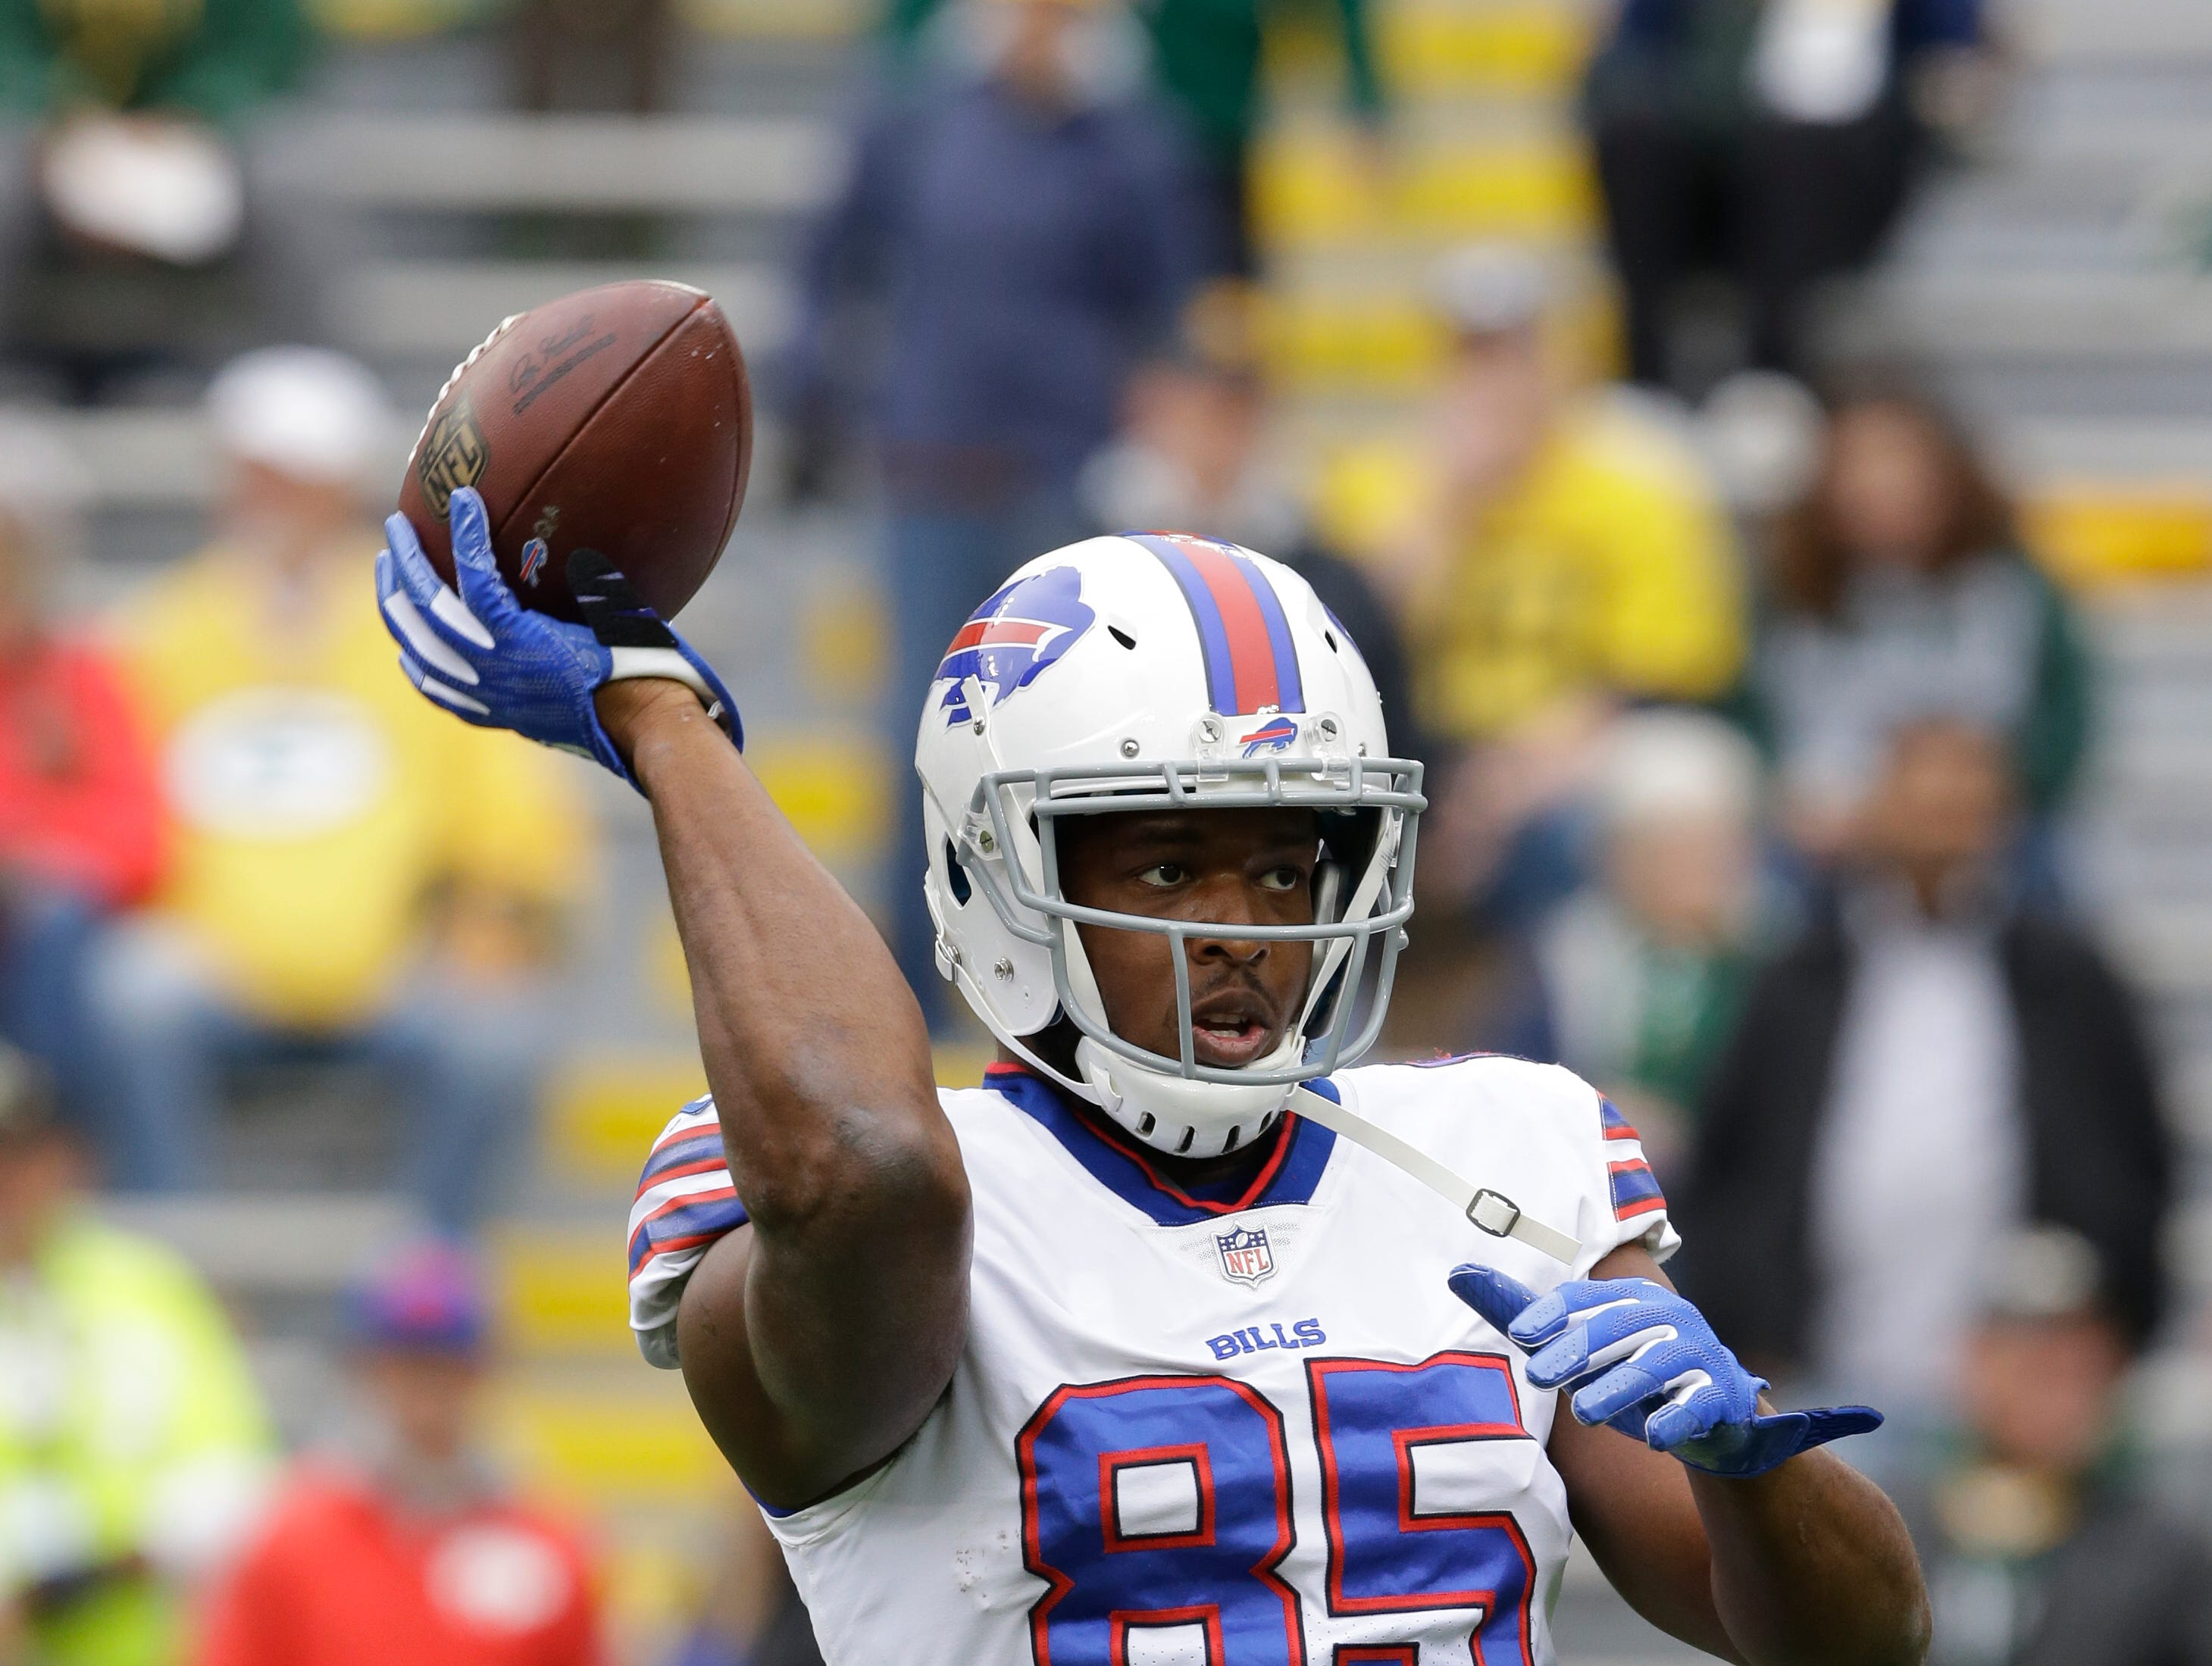 Buffalo Bills' Charles Clay warms up before an NFL football game against the Green Bay Packers Sunday.